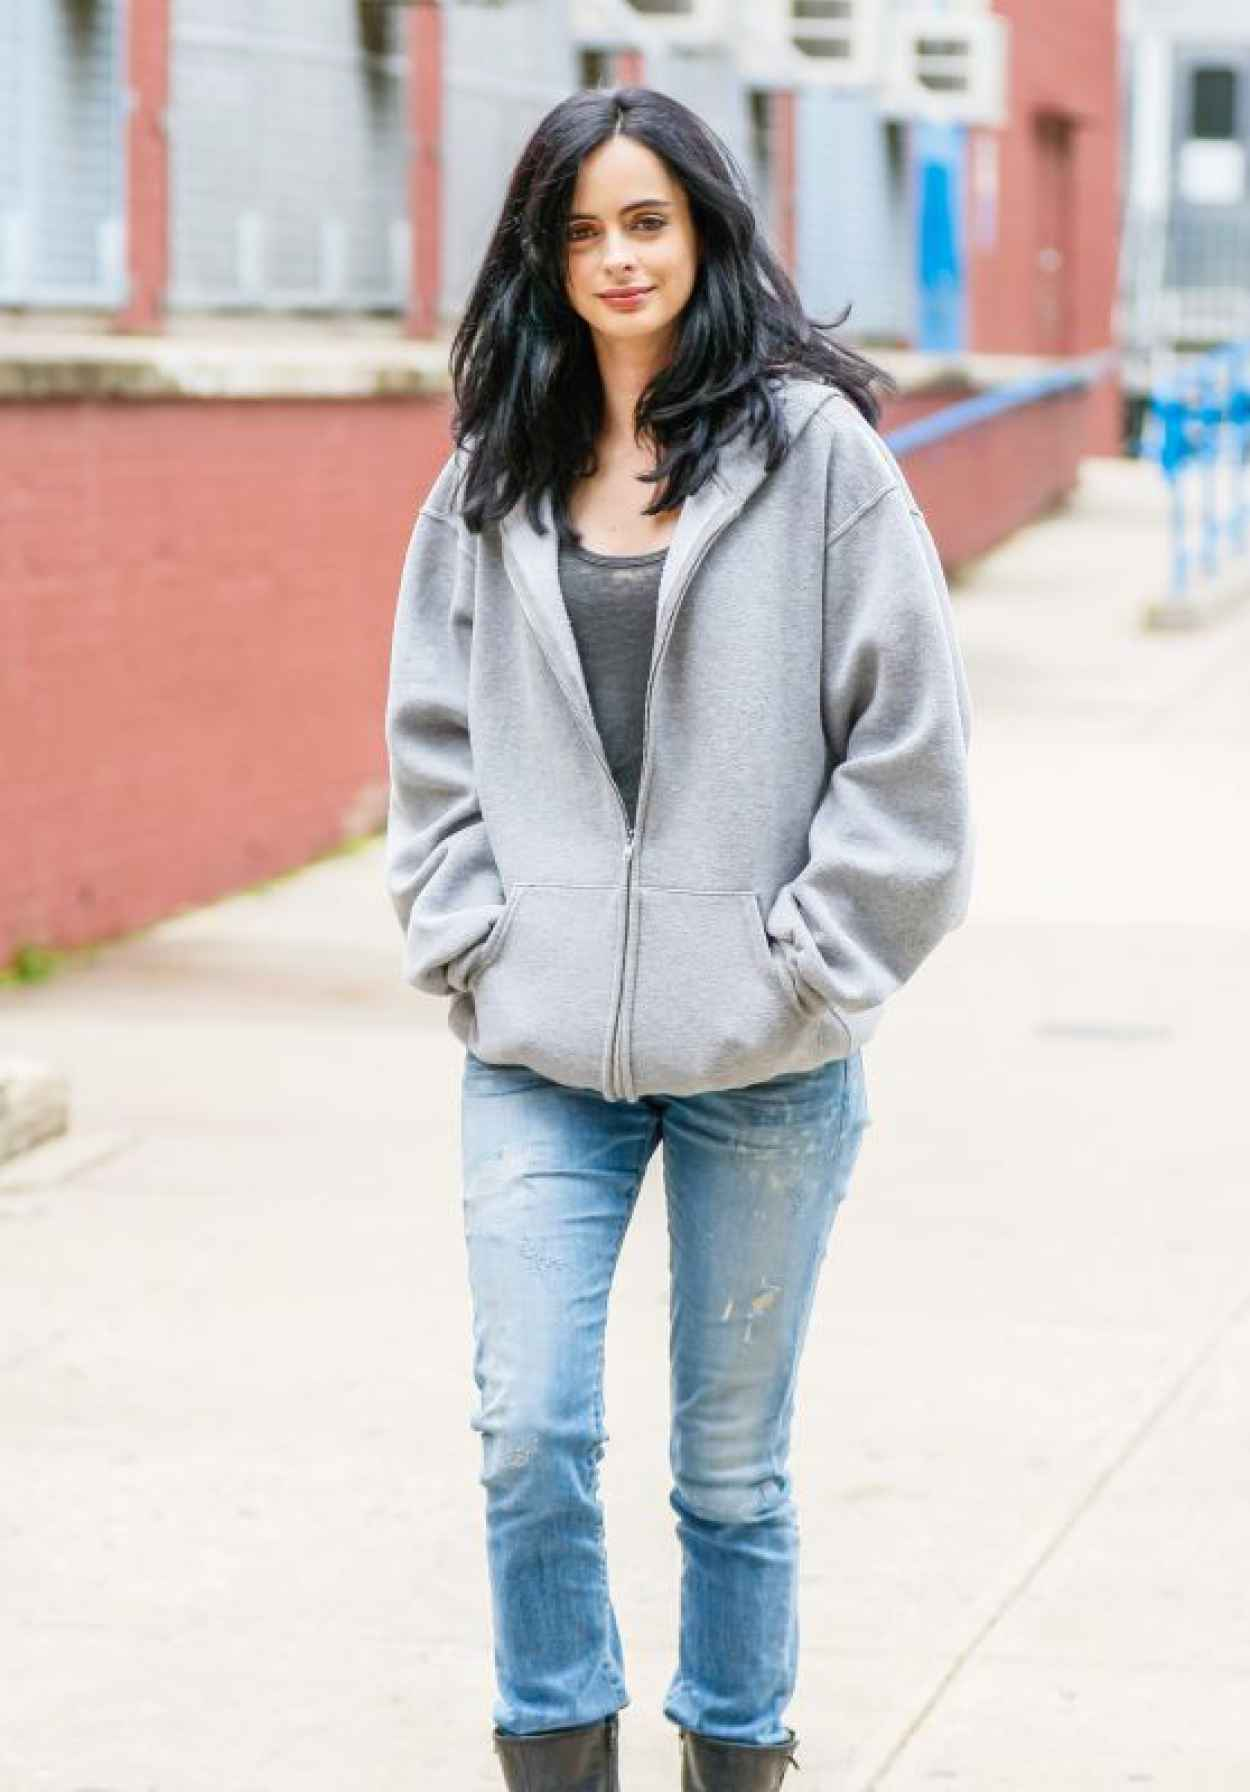 Krysten Ritter - Set of A.K.A. Jessica Jones in New York City, July 2015-1